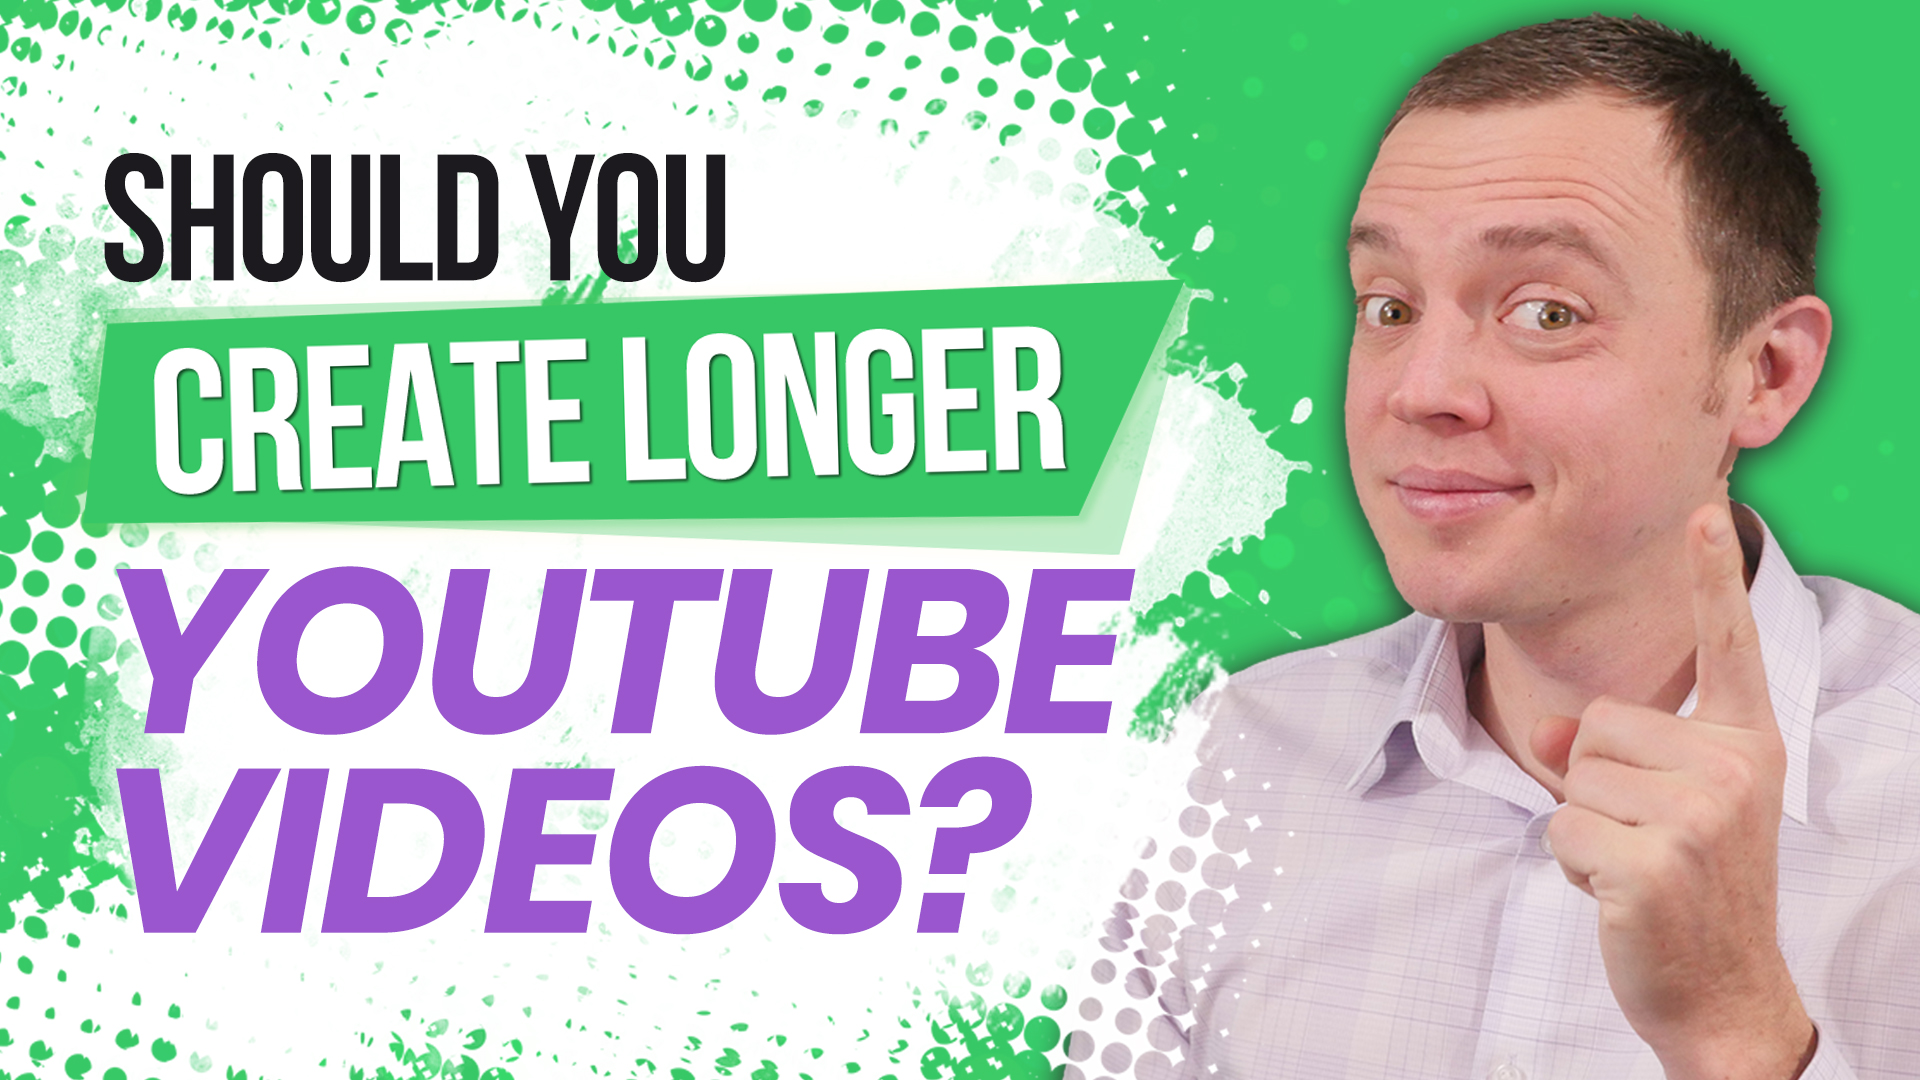 Are Short YouTube Videos Bad? Should You Create Longer Videos?